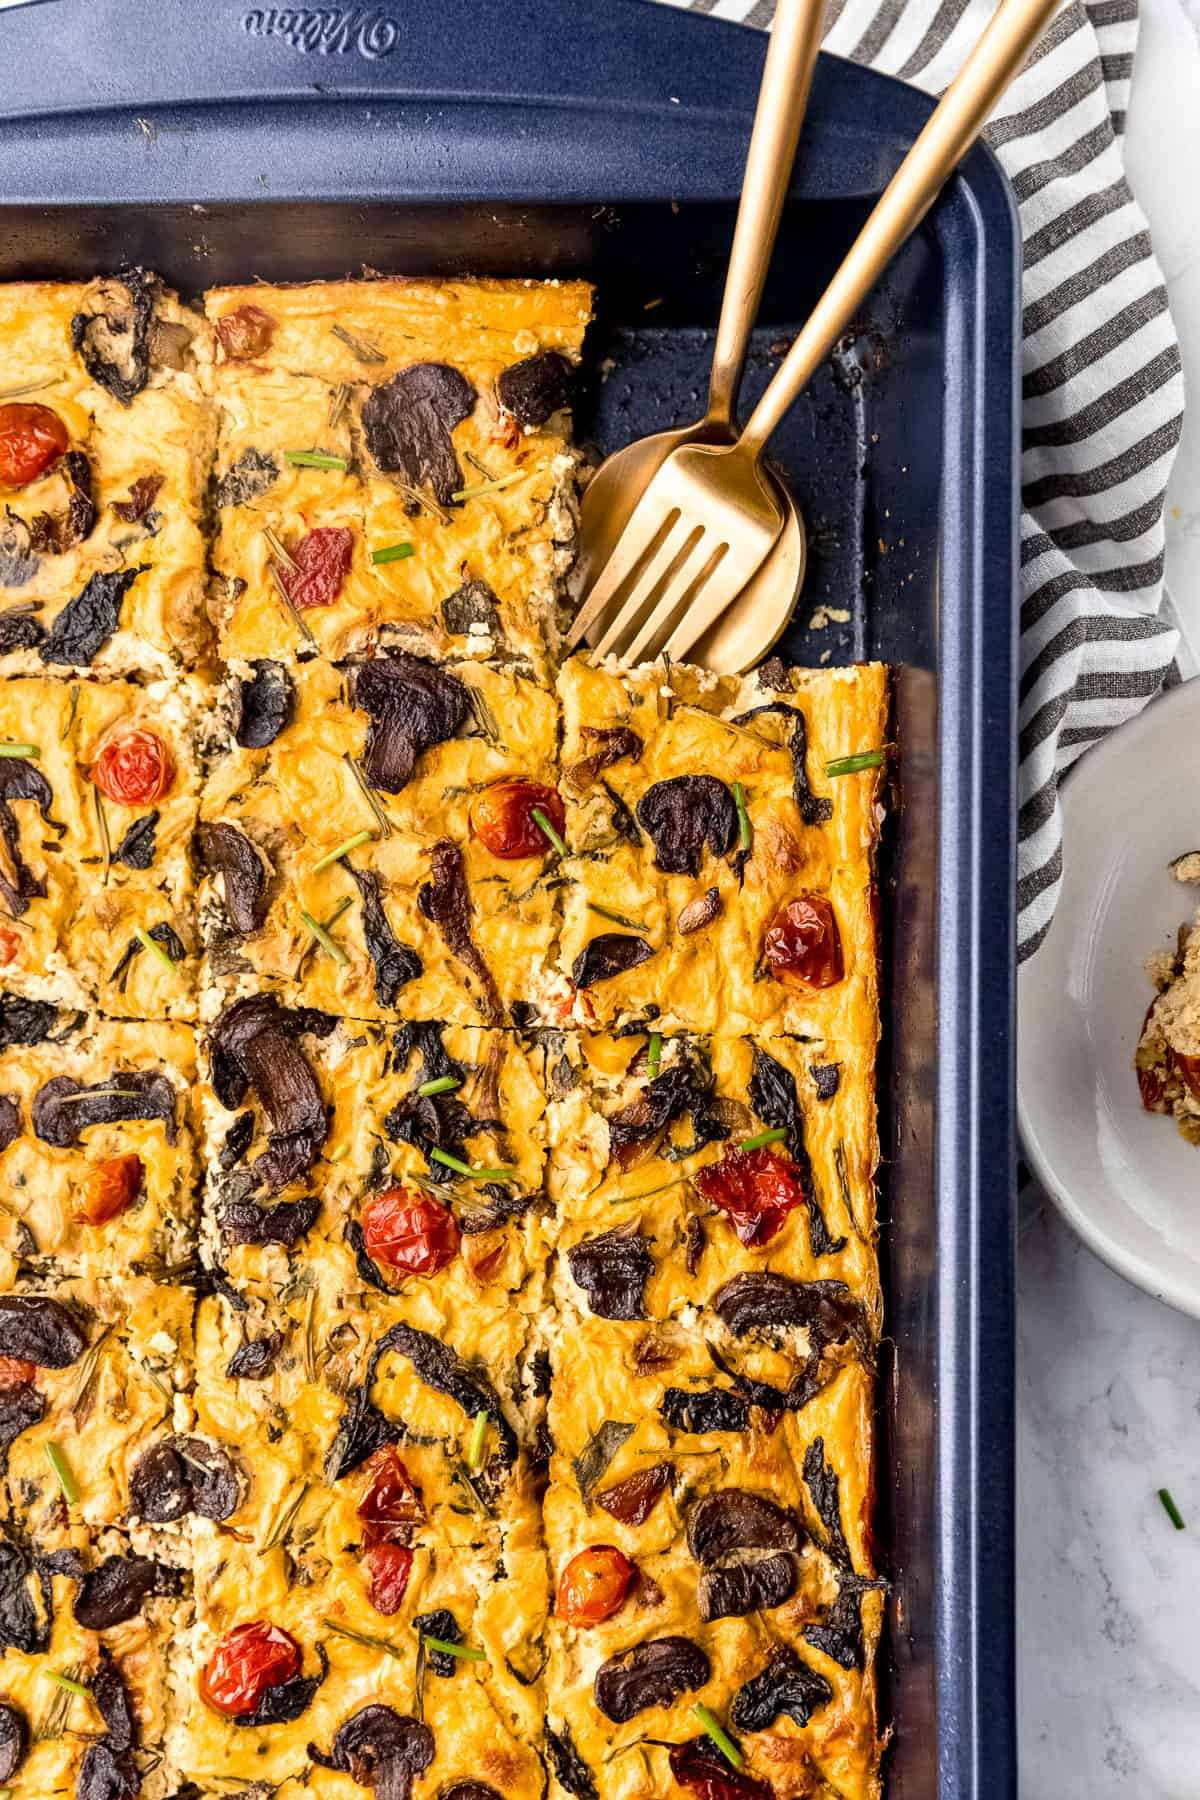 Vegan frittata in a baking sheet with fork and spoon in it.